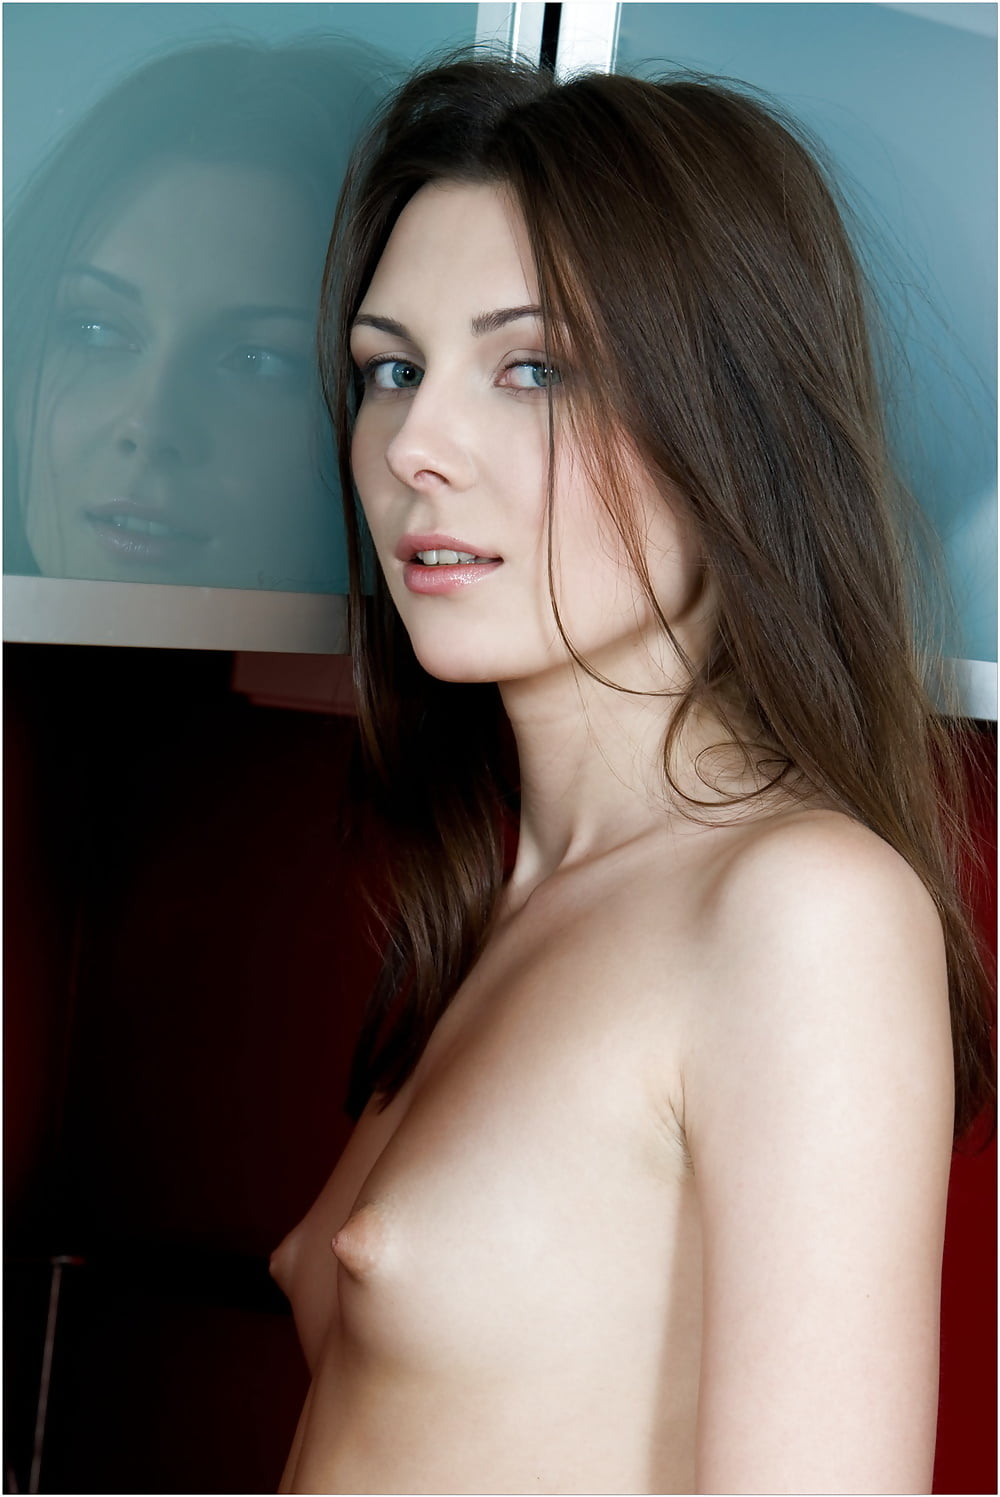 Women with small breasts videode squirt